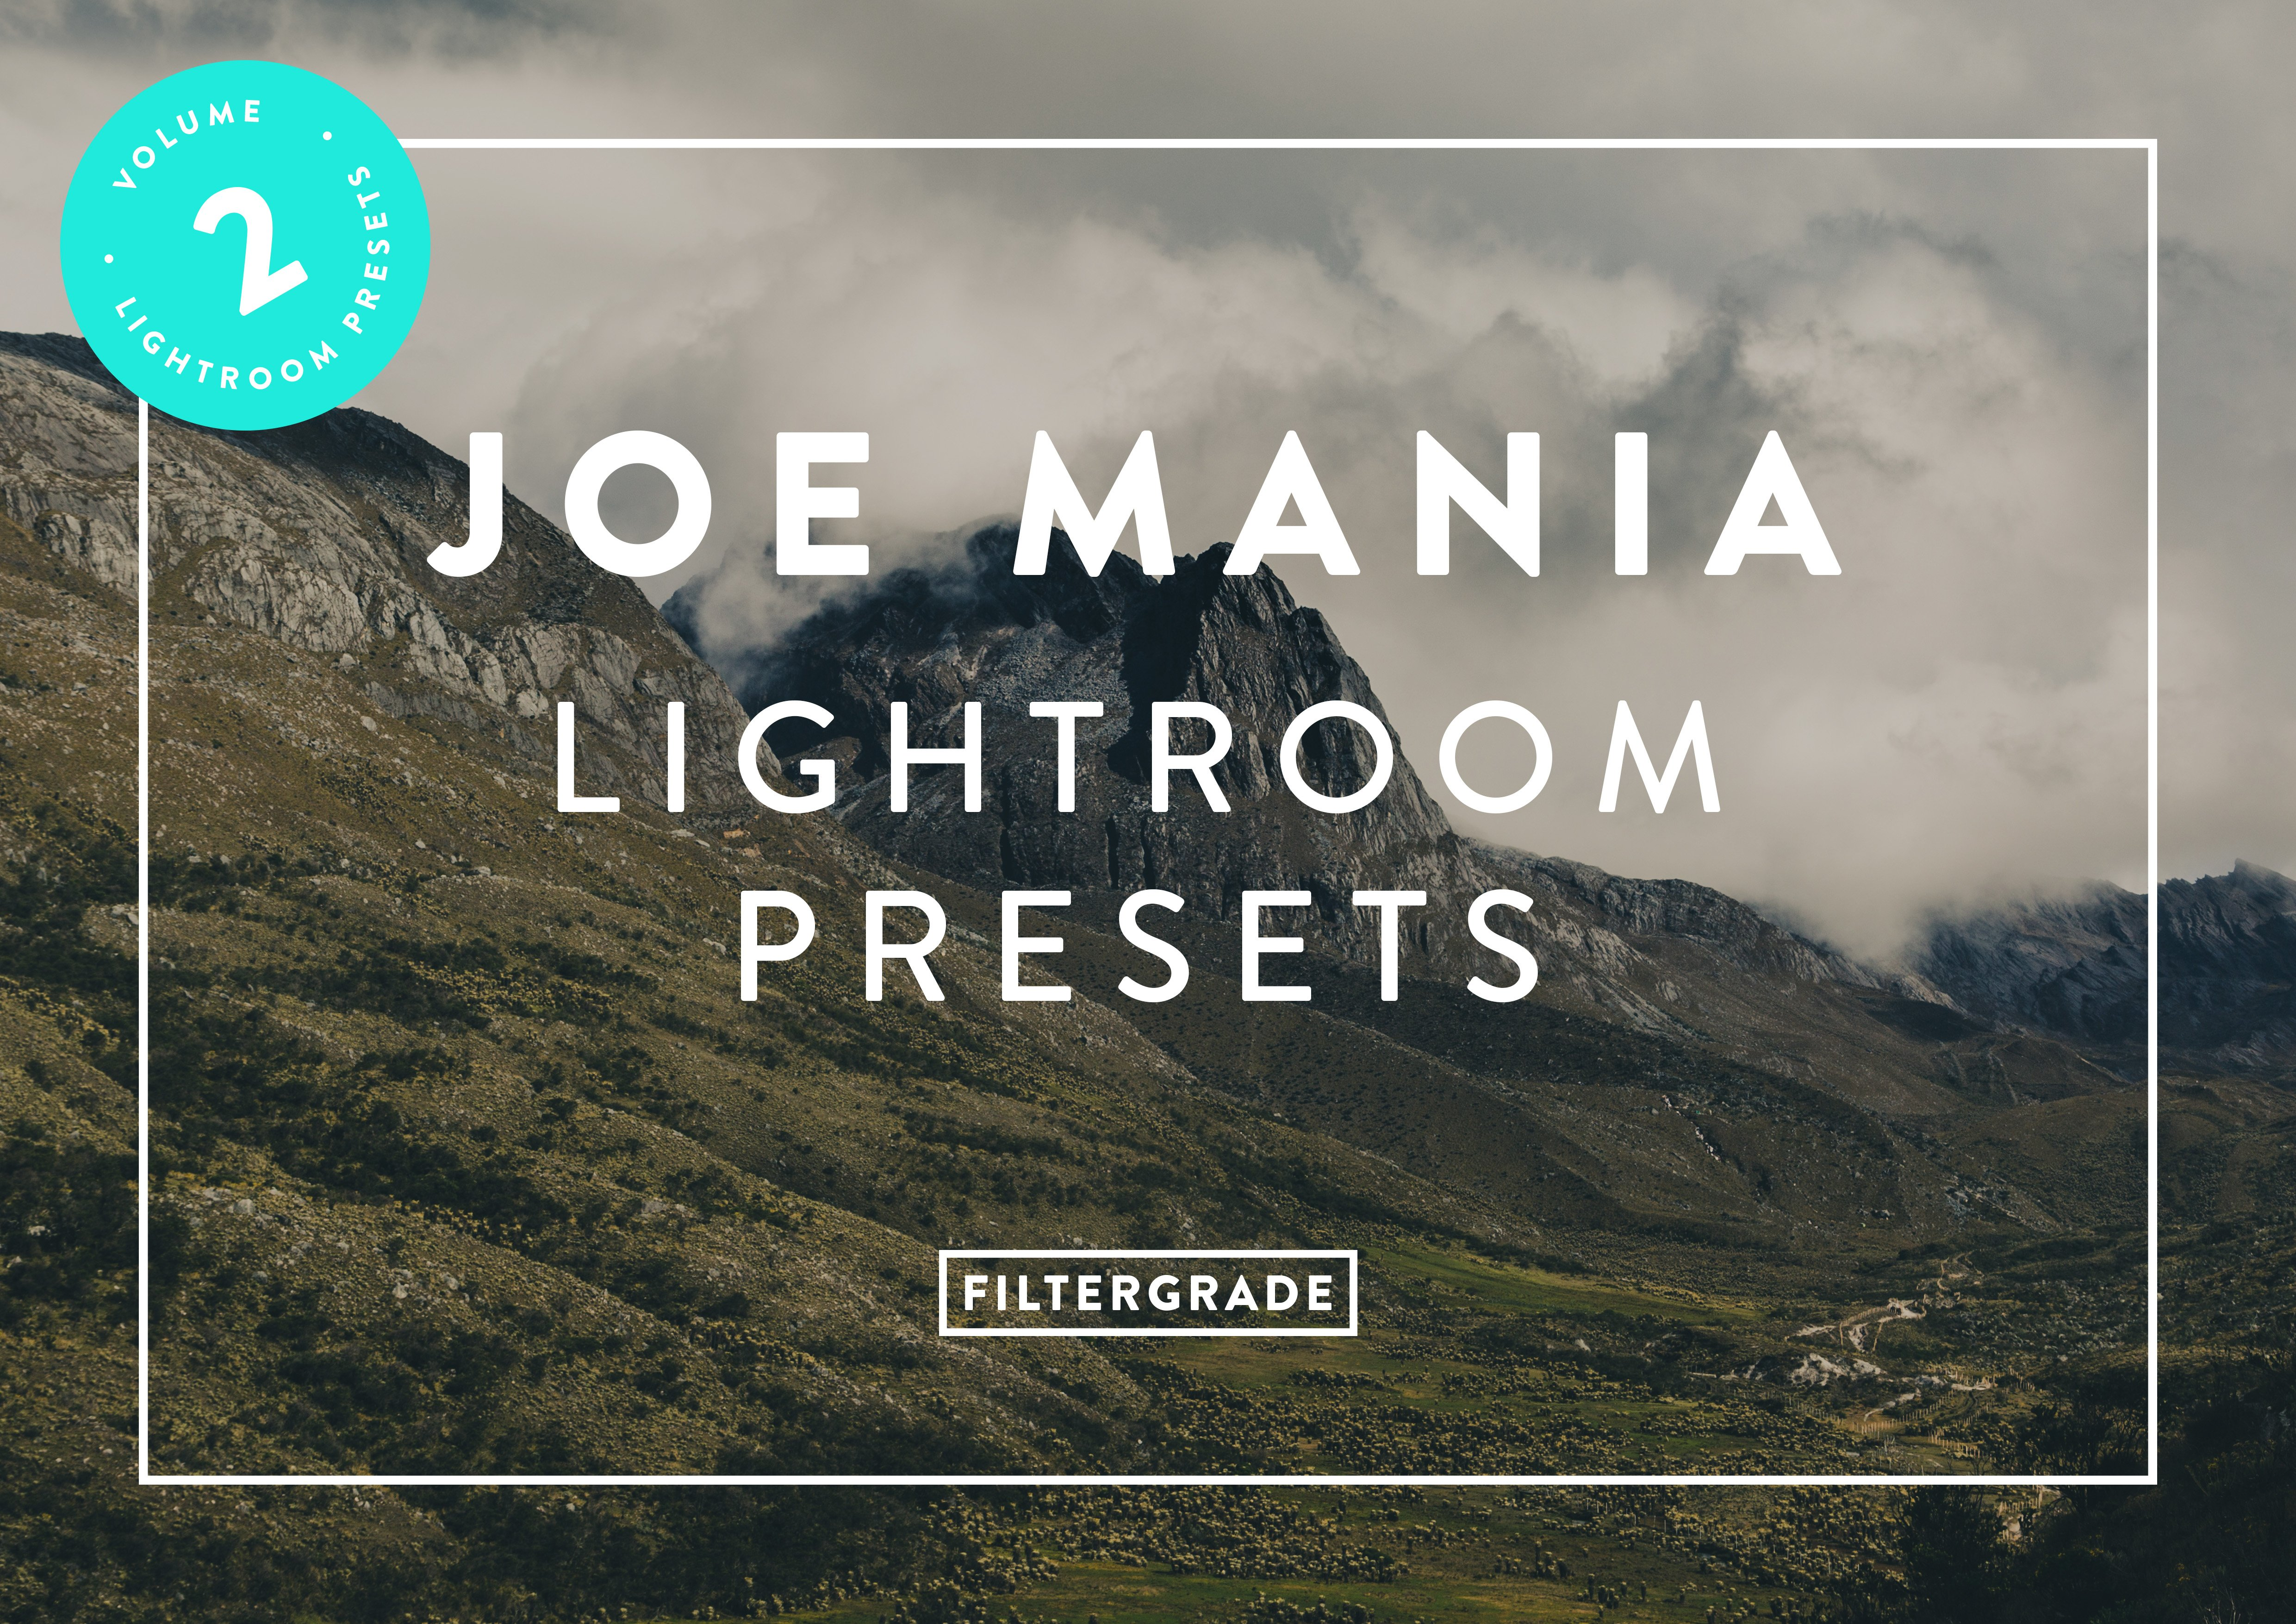 FEATURED - Joe Mania Lightroom Presets Volume 2 - Joe Mania Photography - FilterGrade Digital Marketplace